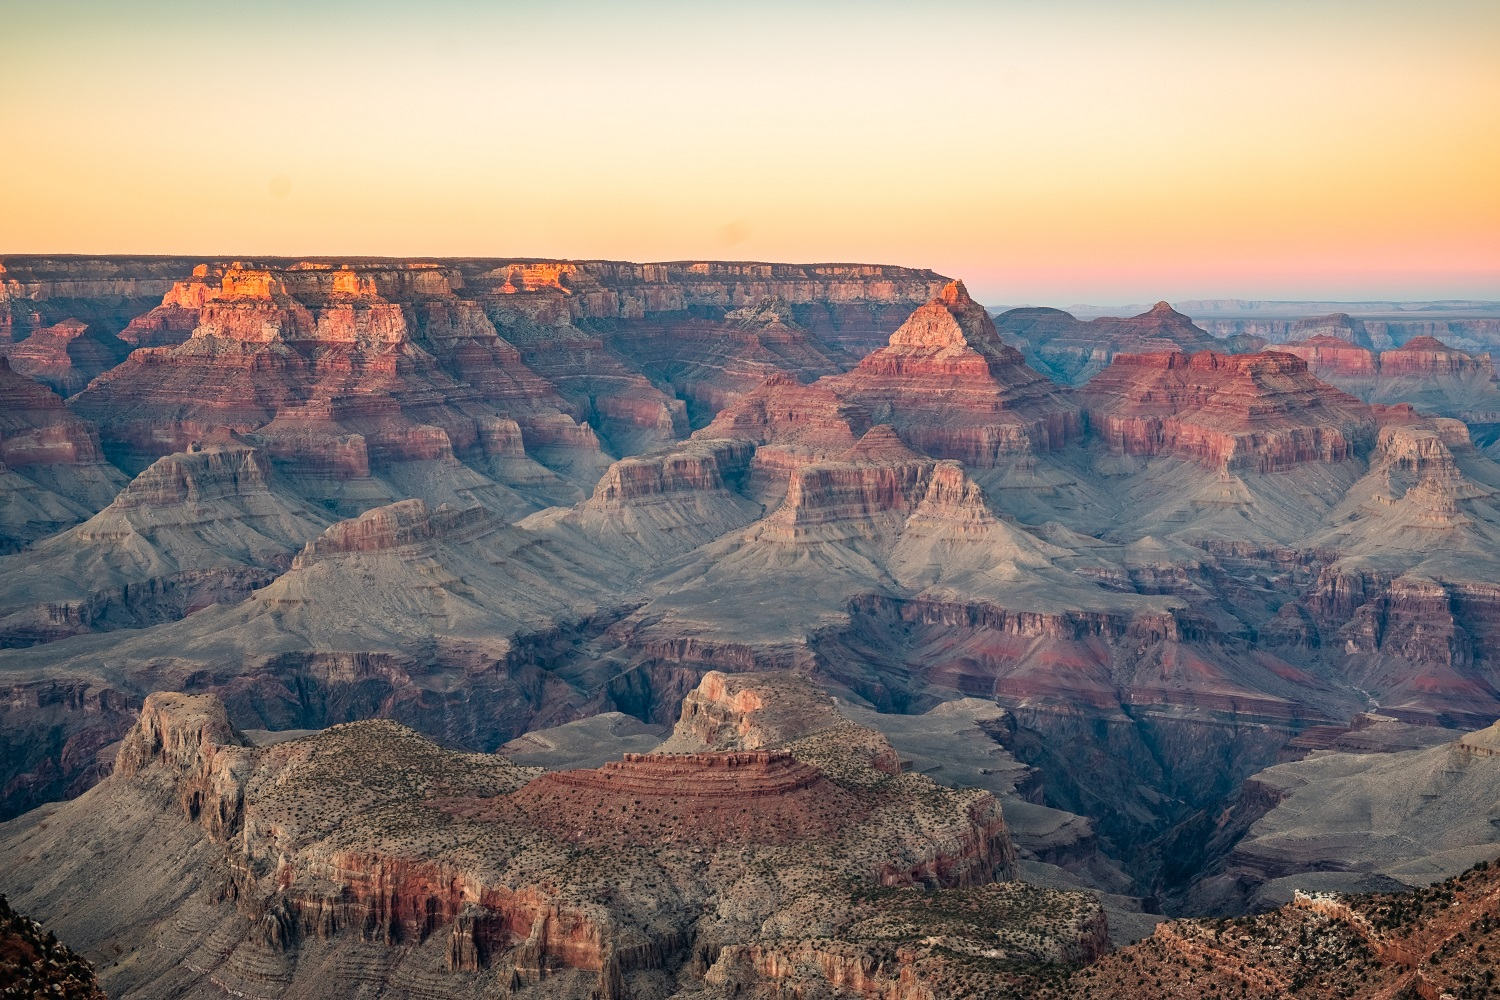 Wide image of the Grand Canyon with lots of oranges and reds.